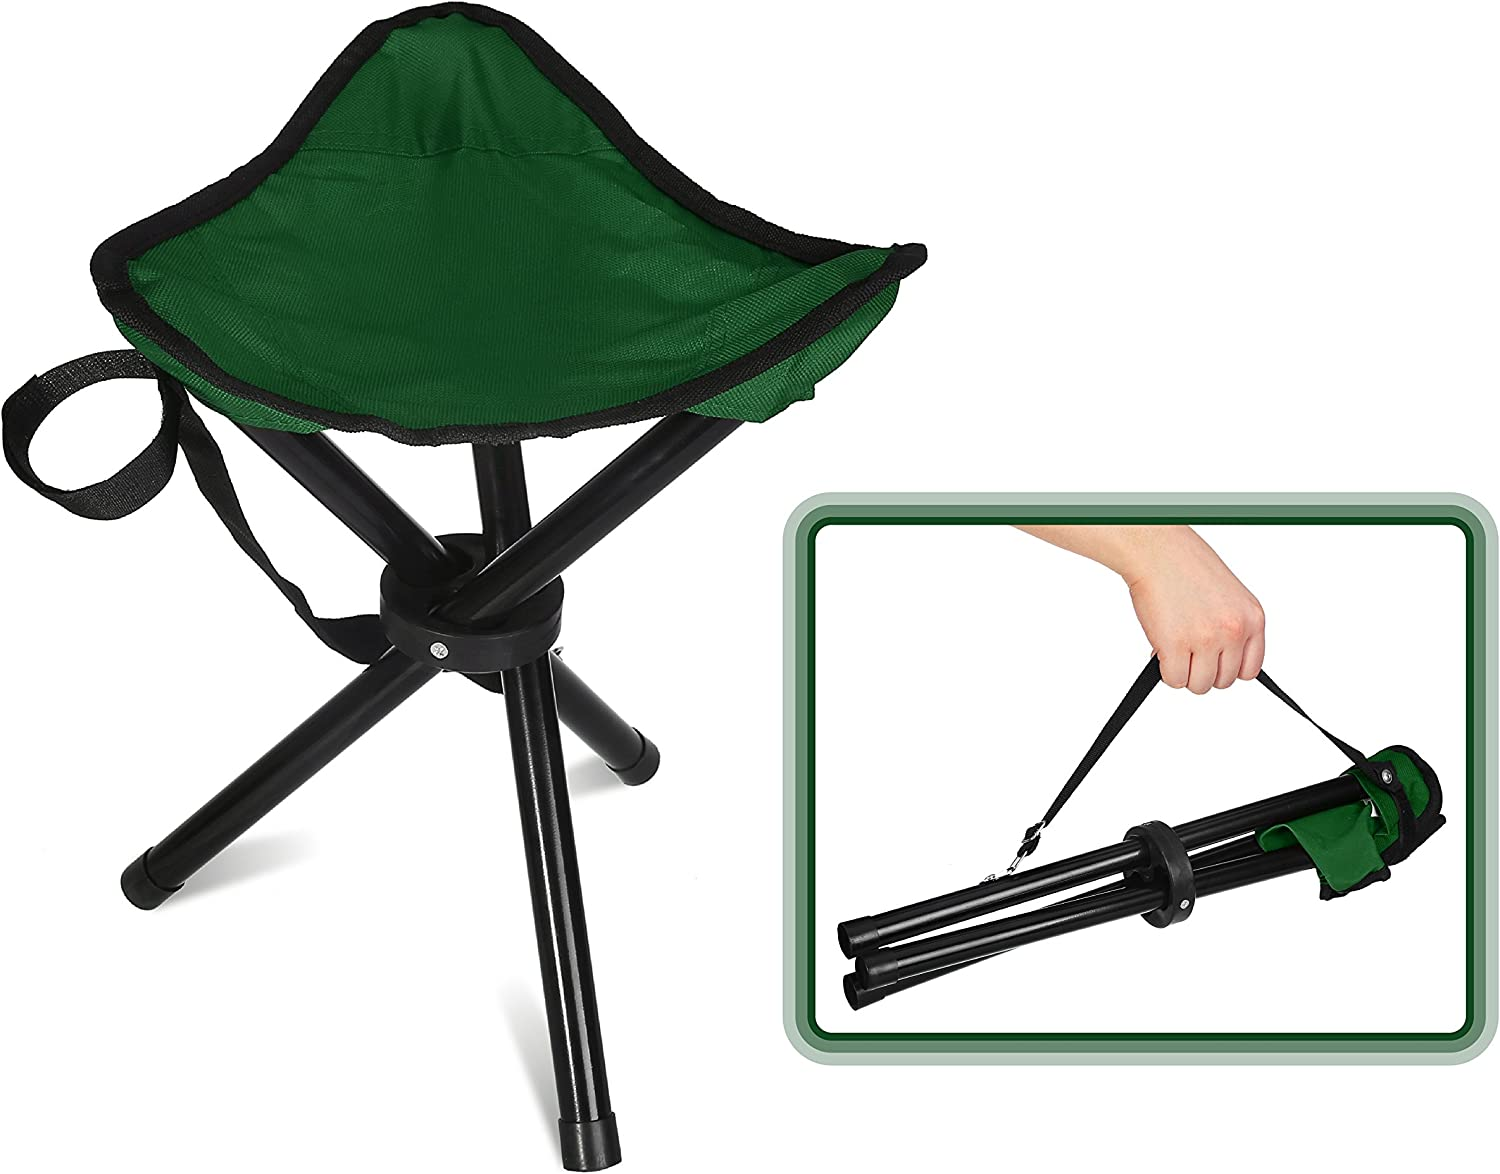 CAMPING TRIPOD FOLDING STOOL chair seat hiking caravan